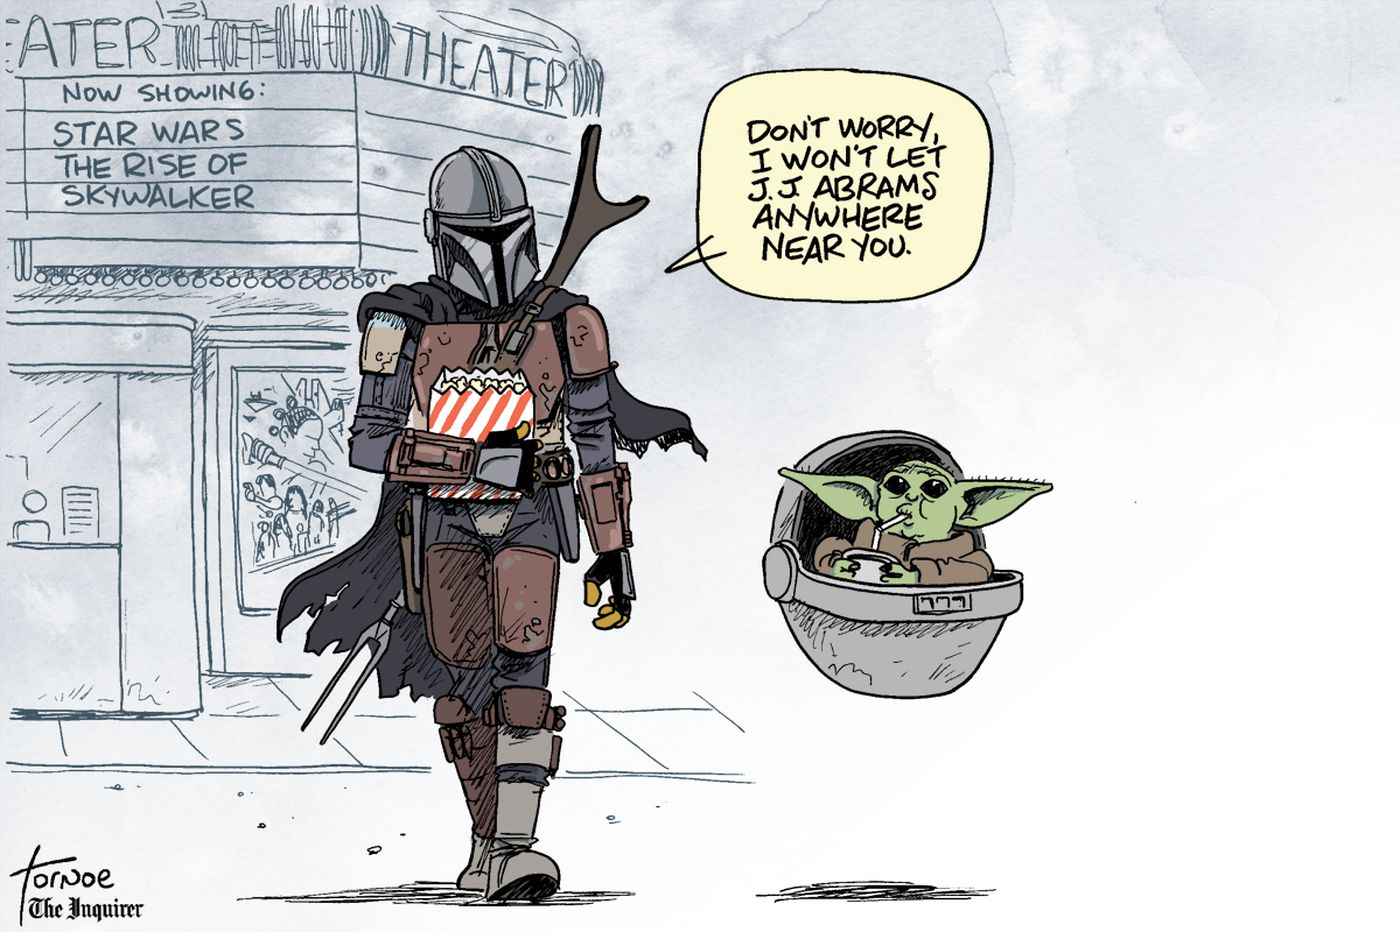 Star Wars cartoon: Baby Yoda and 'The Rise of Skywalker'